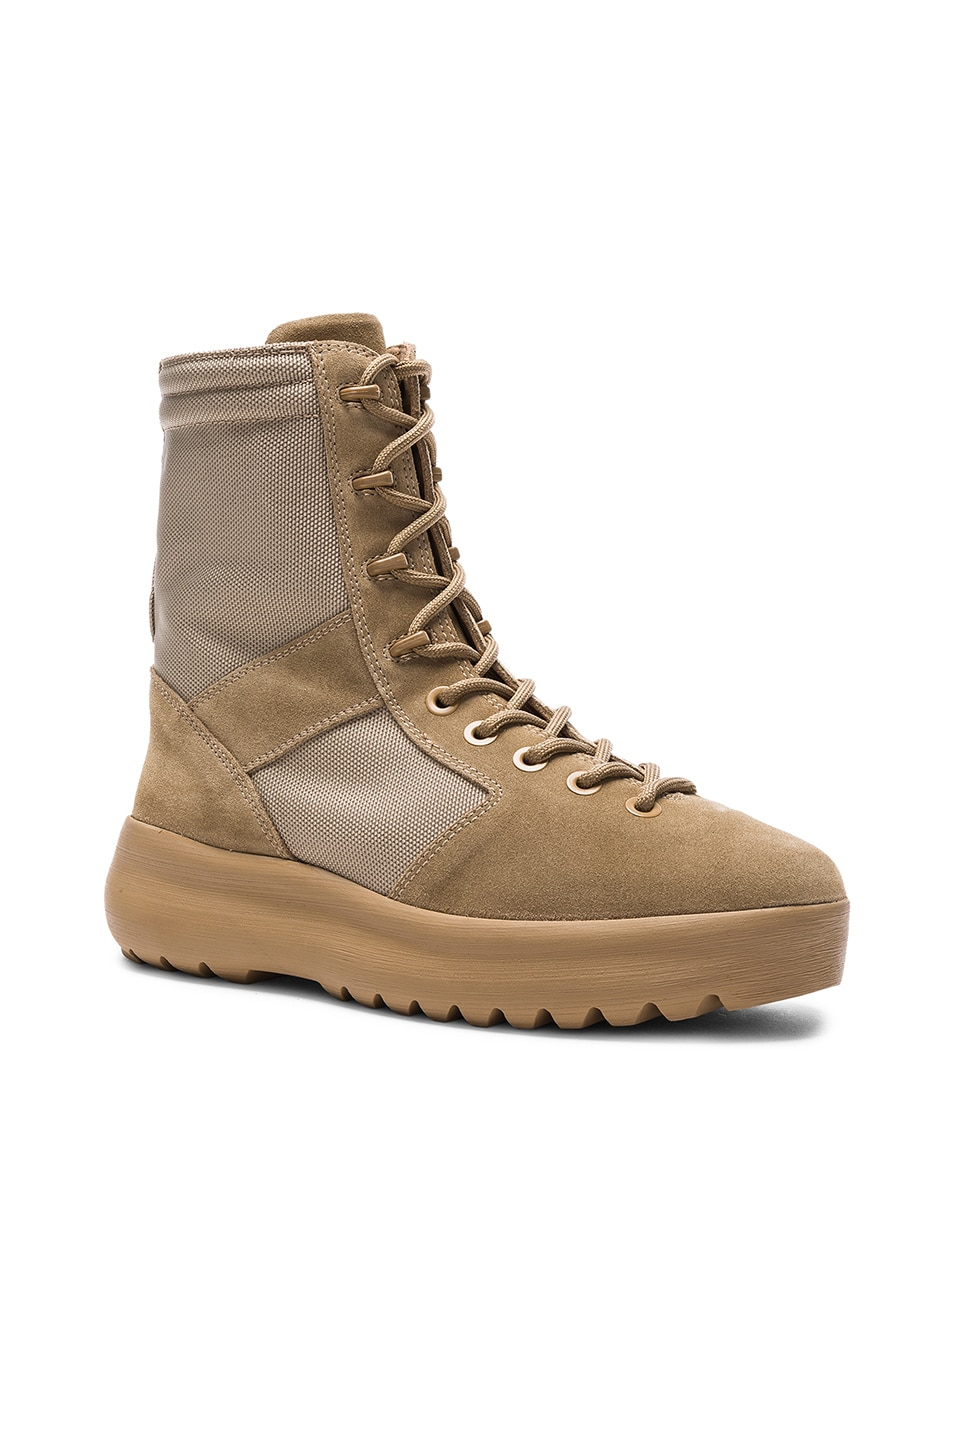 5381883e55e Image 1 of YEEZY Season 3 Military Boots in Rock